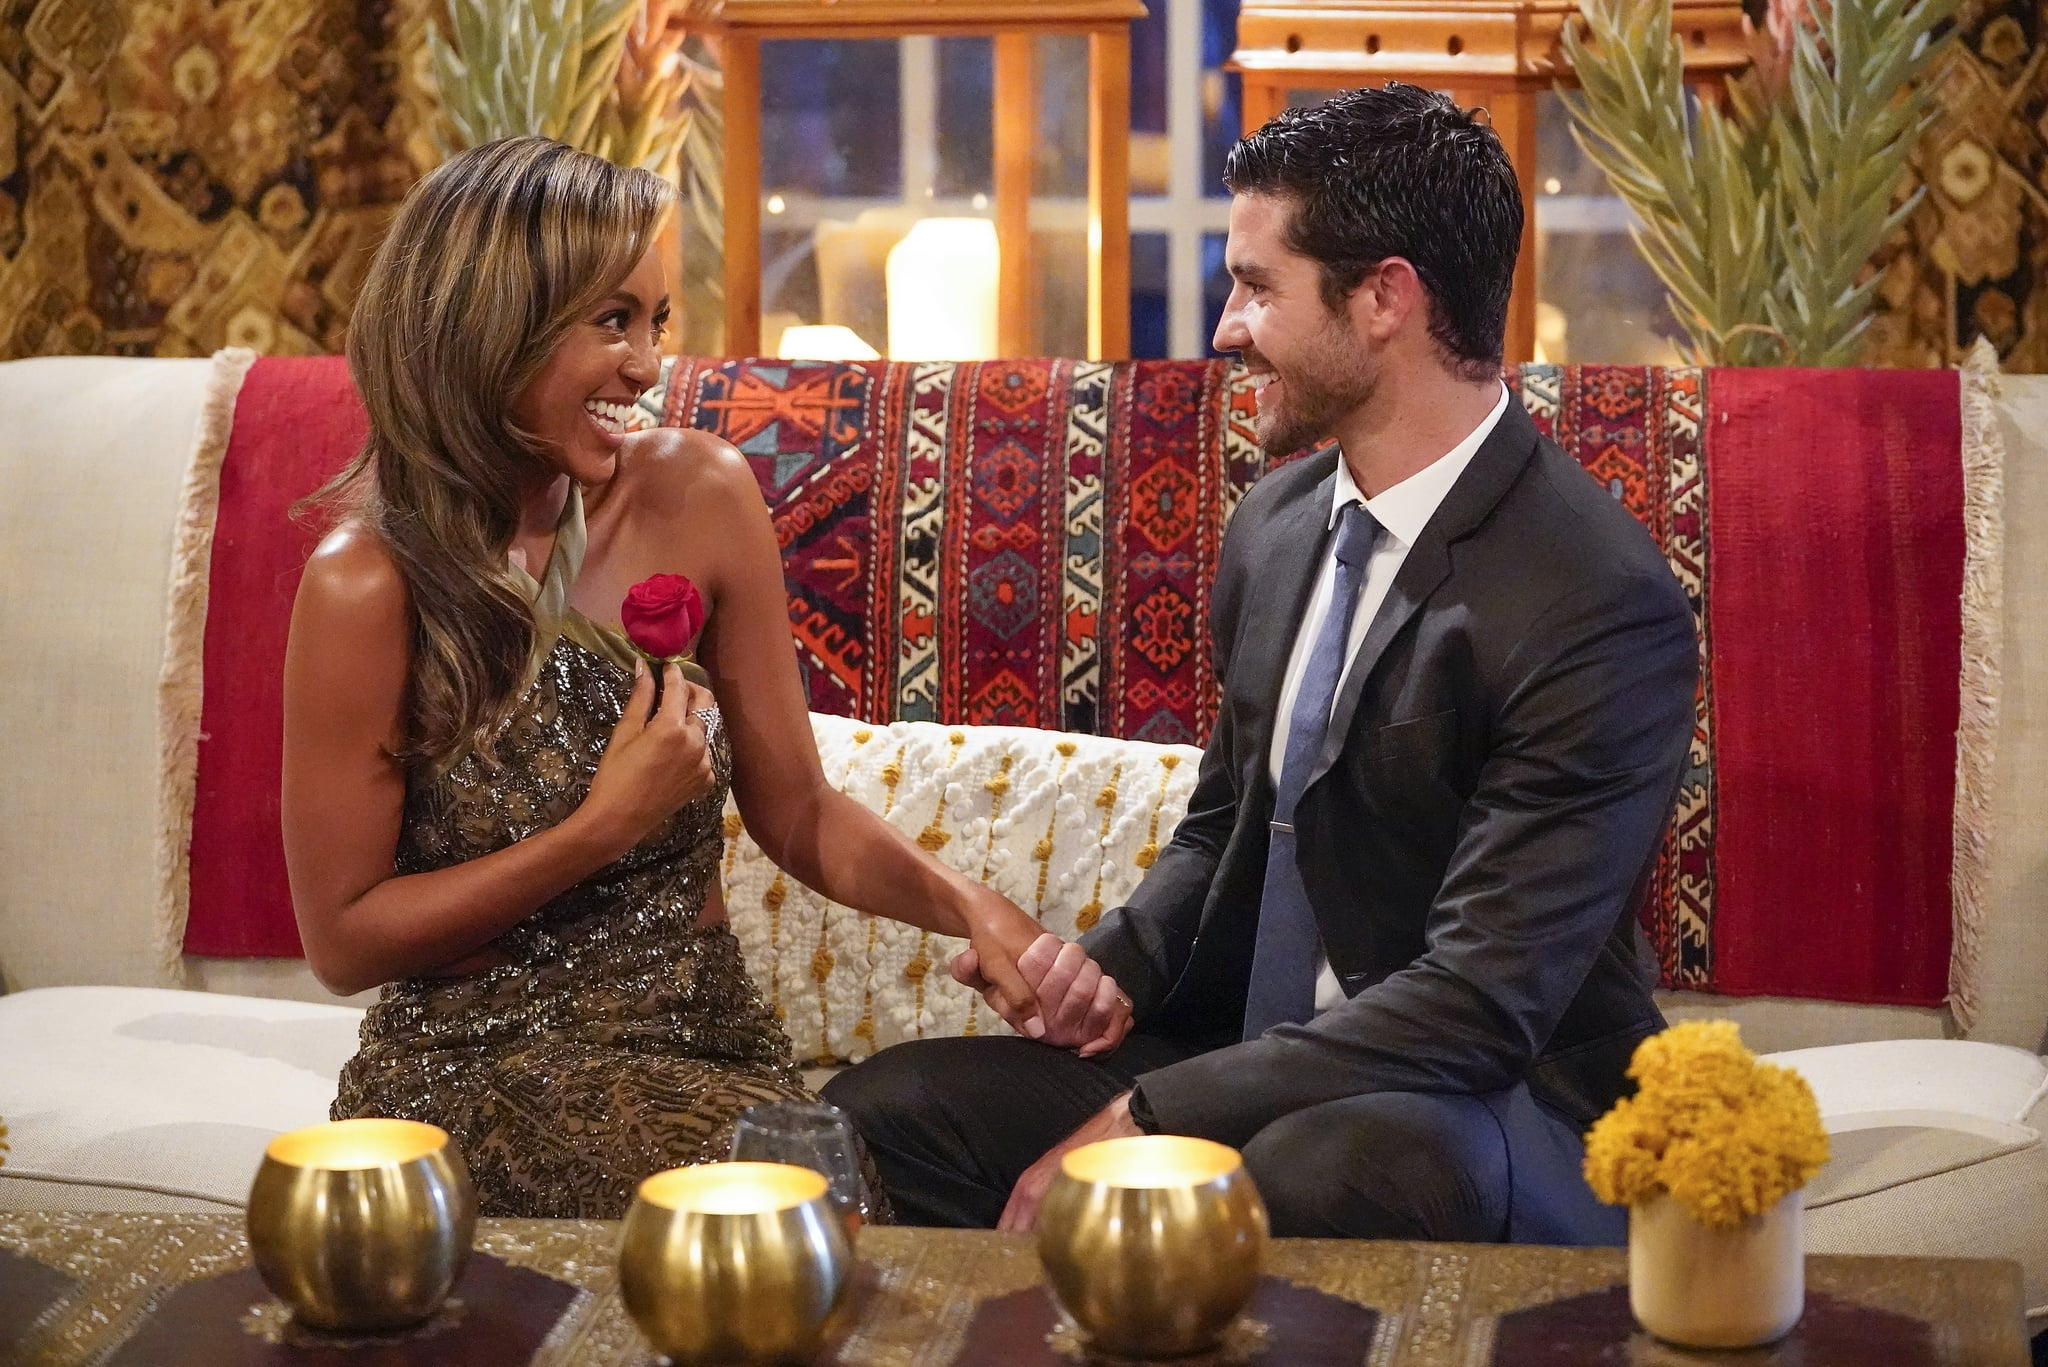 THE BACHELORETTE - 1605  Tayshia Adams, a huge fan favourite from The Bachelor and Bachelor in Paradise, has arrived to find the love of her life. Just when she is ready to begin her journey, another surprise arrivesmore men are added to the 16 remaining bachelors who are excited to get to know her. The competition for Tayshias heart heats up, but one man is struggling with his enduring feelings for Clare. Clare and her fianc, Dale, have a heart-to-heart chat with Chris Harrison as they try to explain the thunderbolt that hit both of them simultaneously. Brendan captures the first one-on-one date with Tayshia, but although he is eager to make a deeper connection, he is worried that baggage from a past relationship might put an end to his romantic prospects before the night is over on The Bachelorette, TUESDAY, NOV. 10 (8:00-10:01 p.m. EST), on ABC. (ABC/Craig Sjodin)TAYSHIA ADAMS, SPENCER